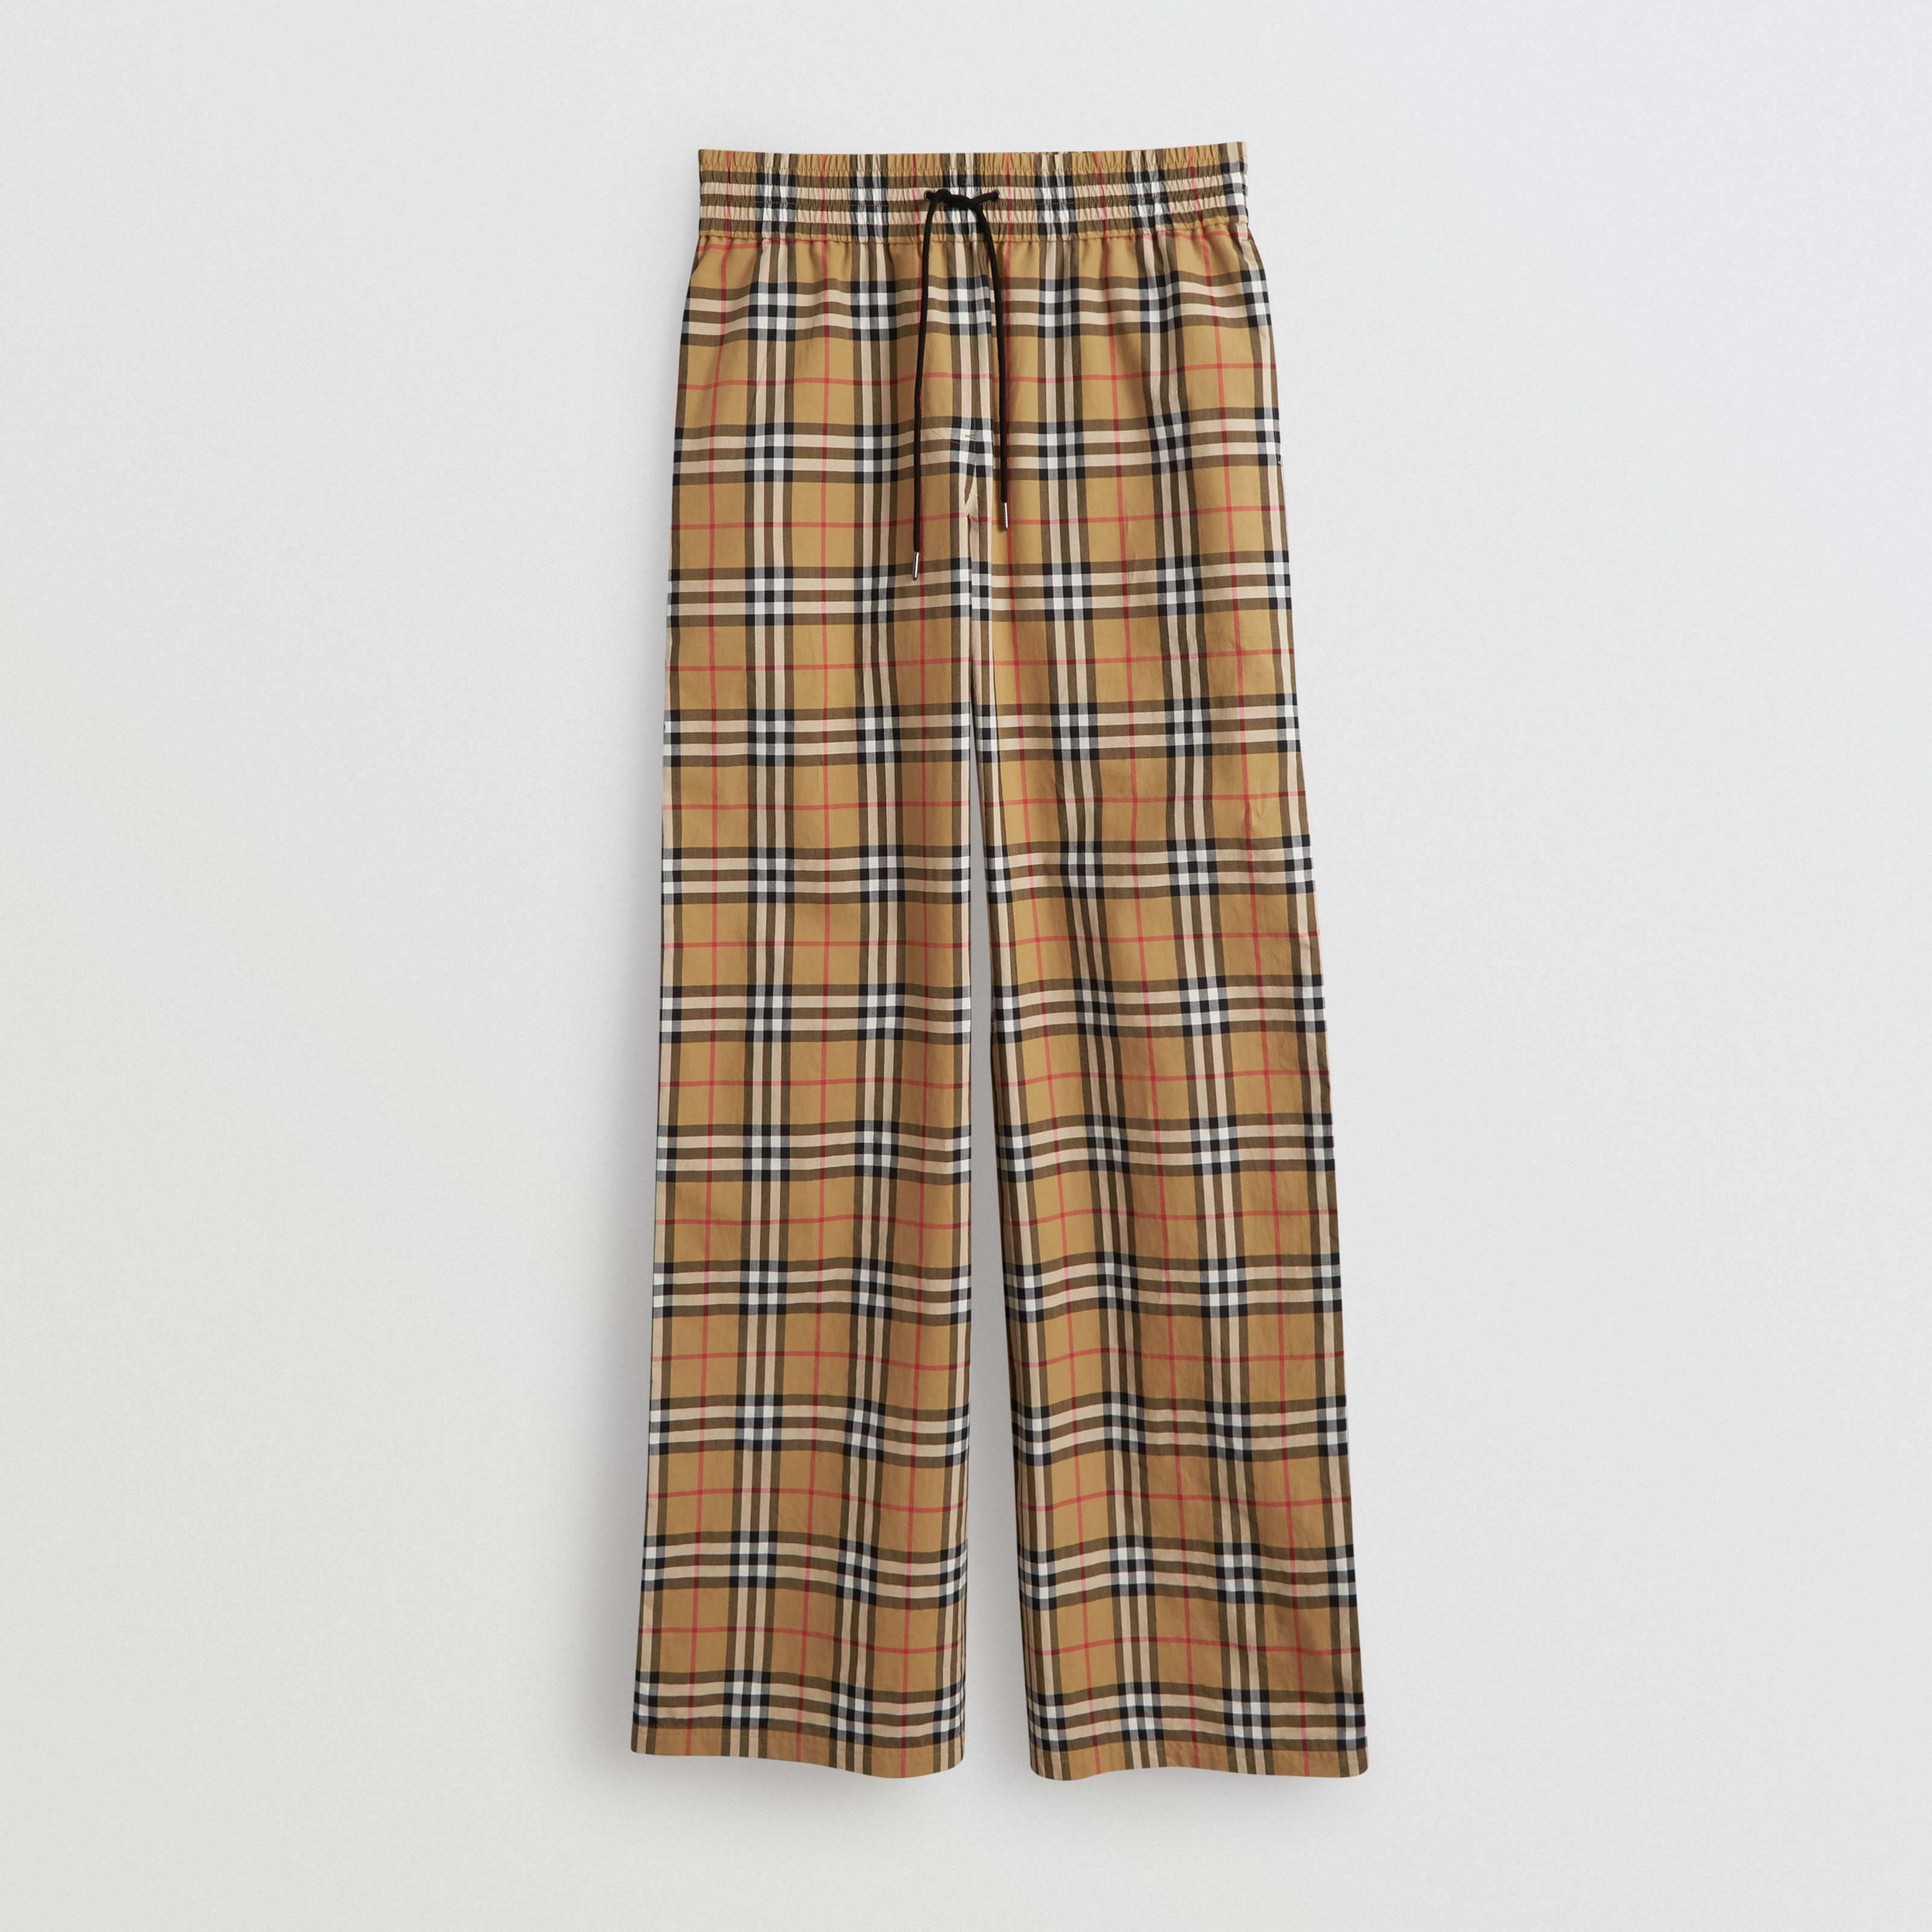 Satin Trim Vintage Check Cotton Trousers in Antique Yellow - Women | Burberry - 4